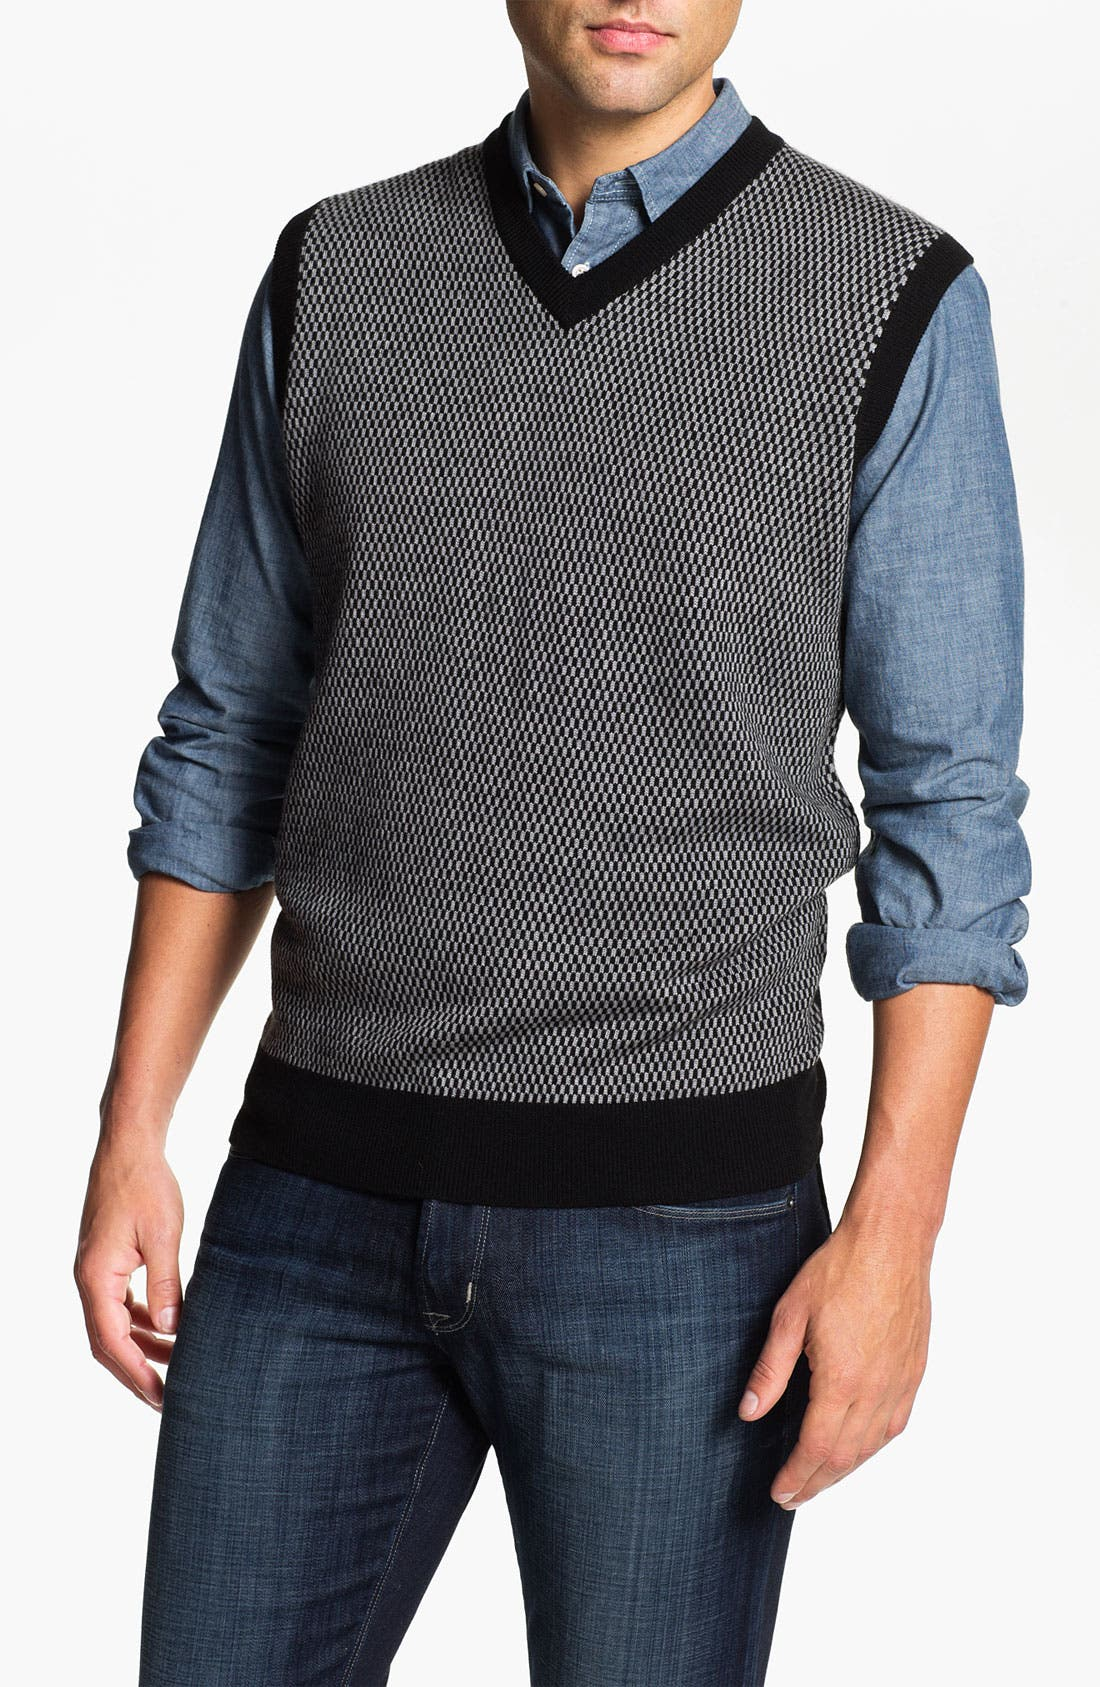 Alternate Image 1 Selected - Toscano Merino Wool Blend Sweater Vest